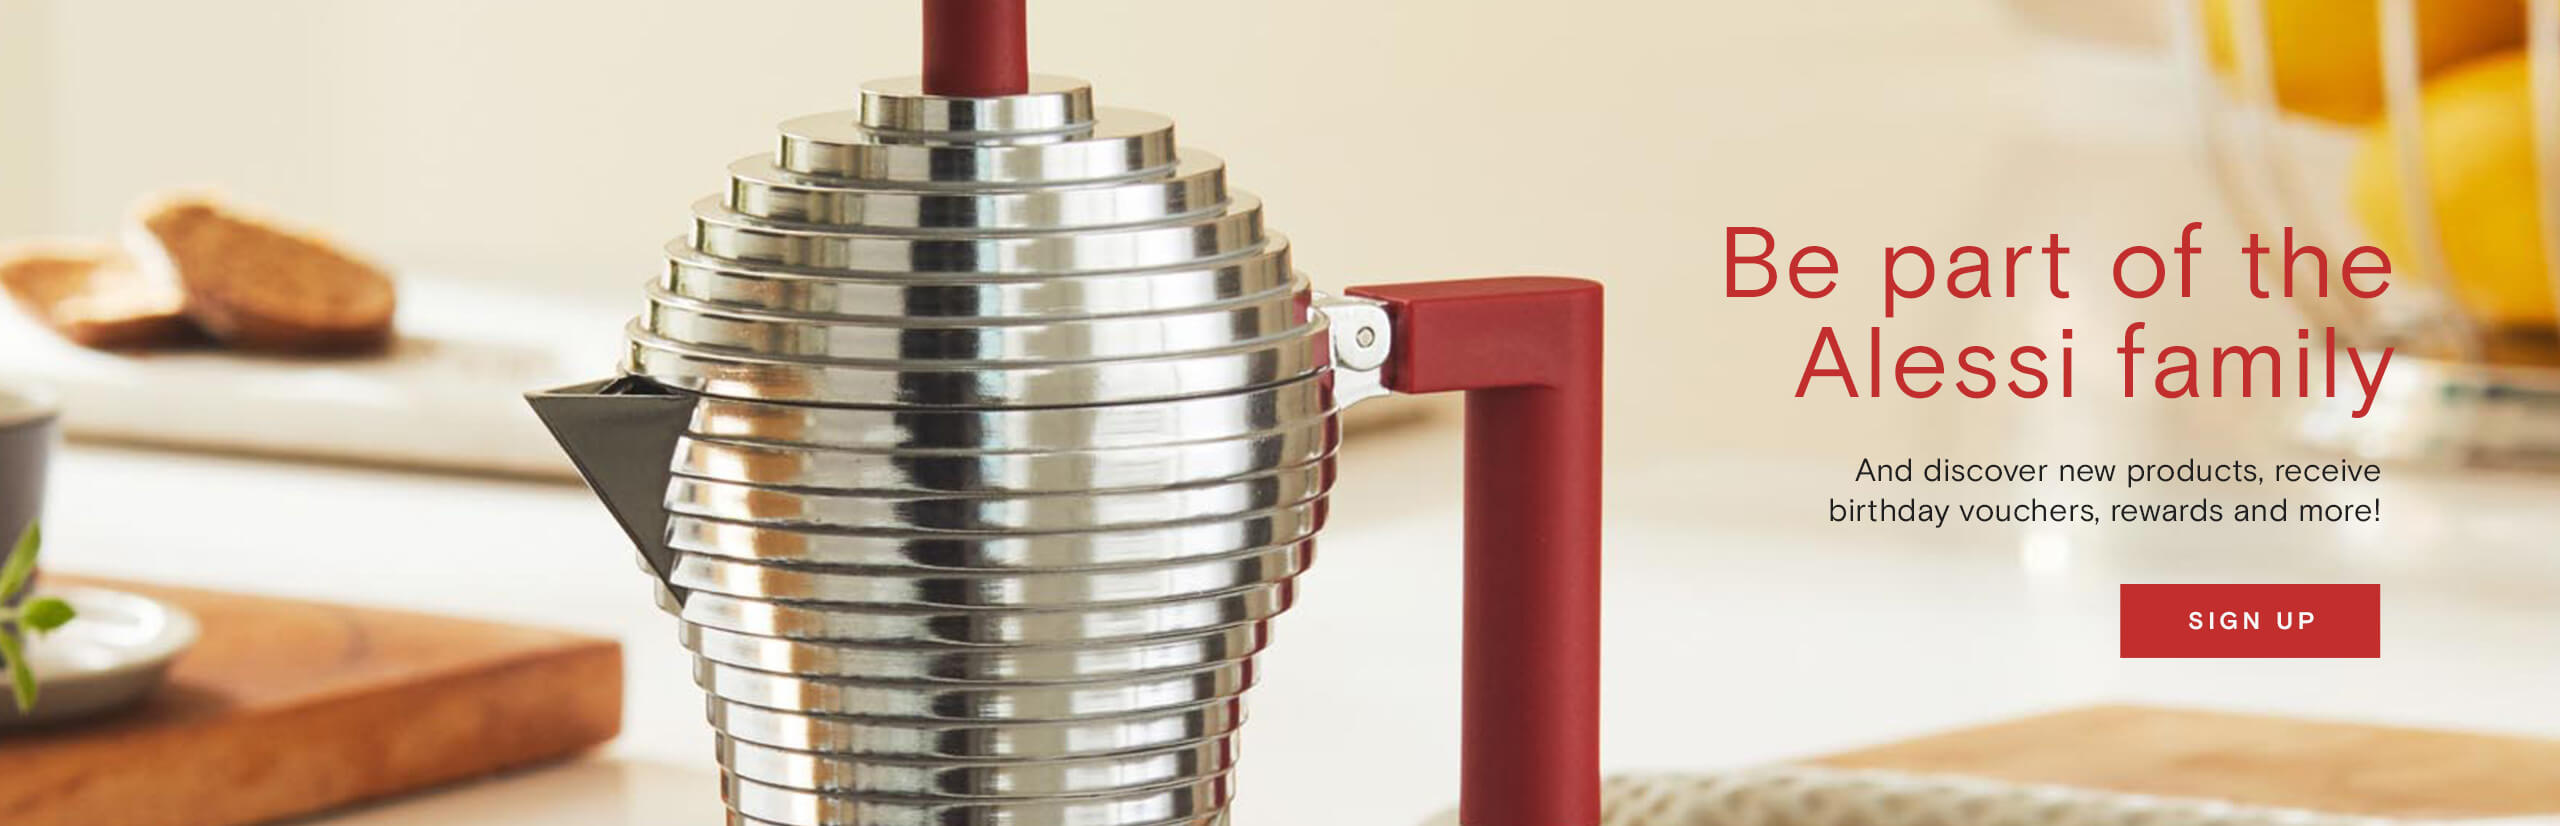 Be part of the Alessi family